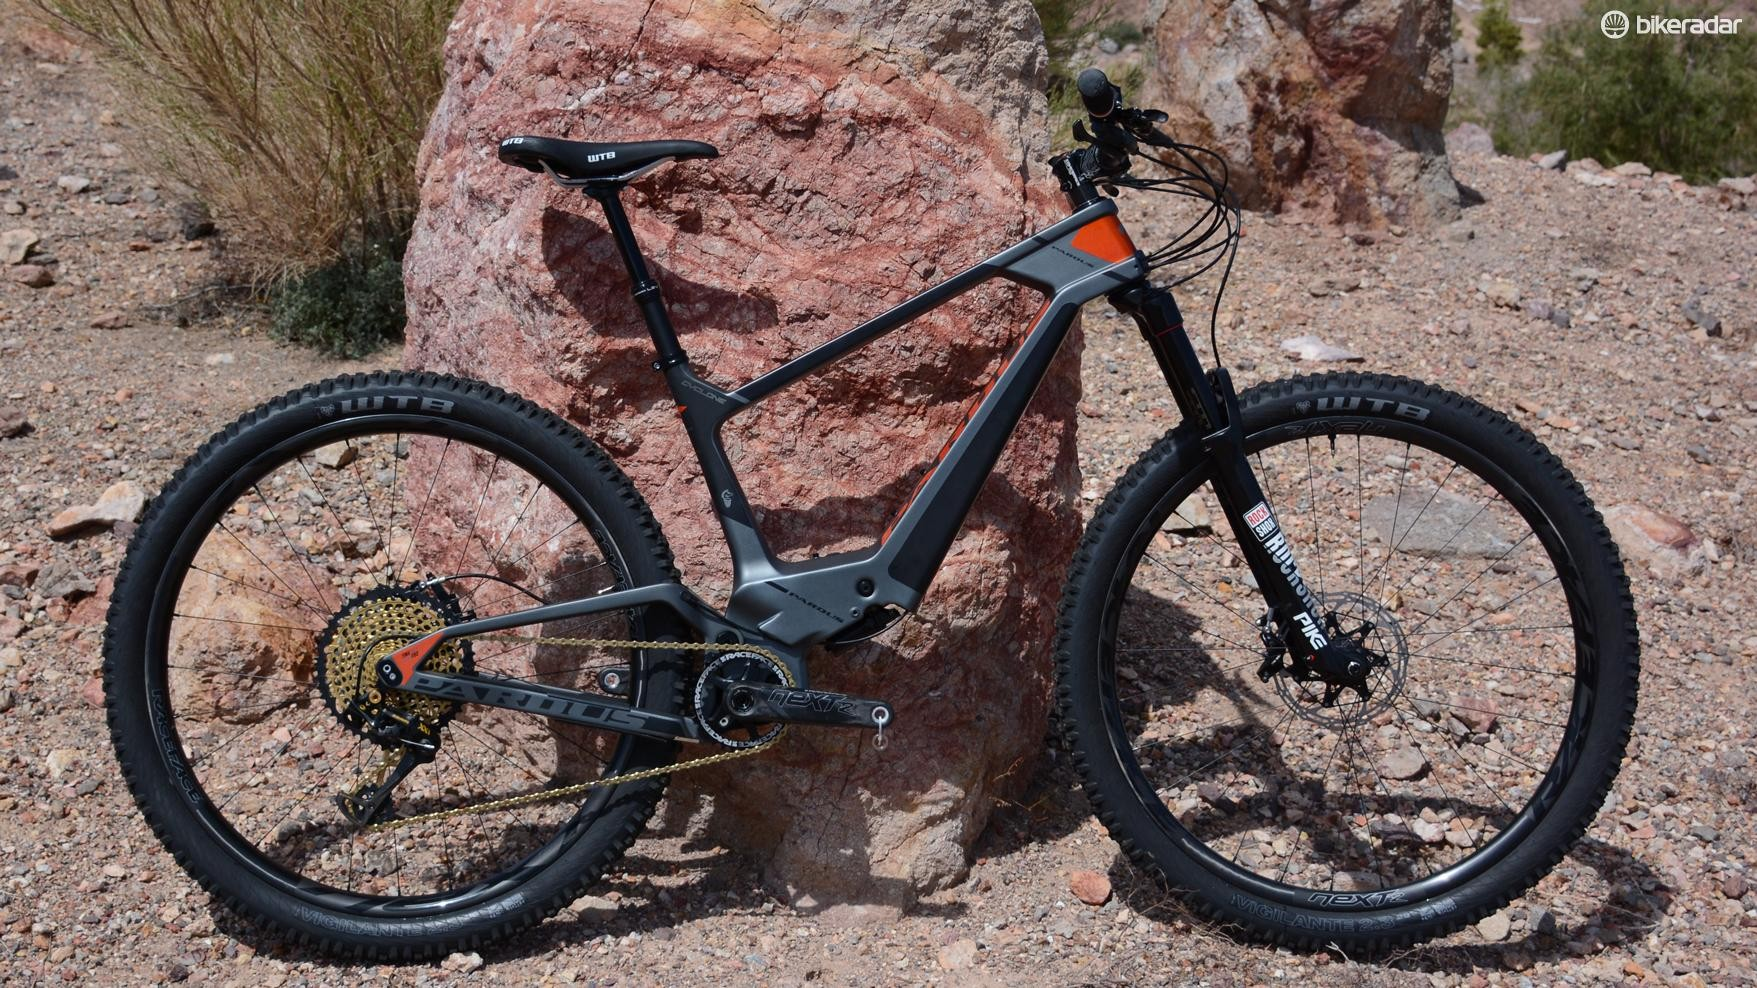 This is not an electric bike, it's a new full-suspension bike with the rear shock tucked inside the frame